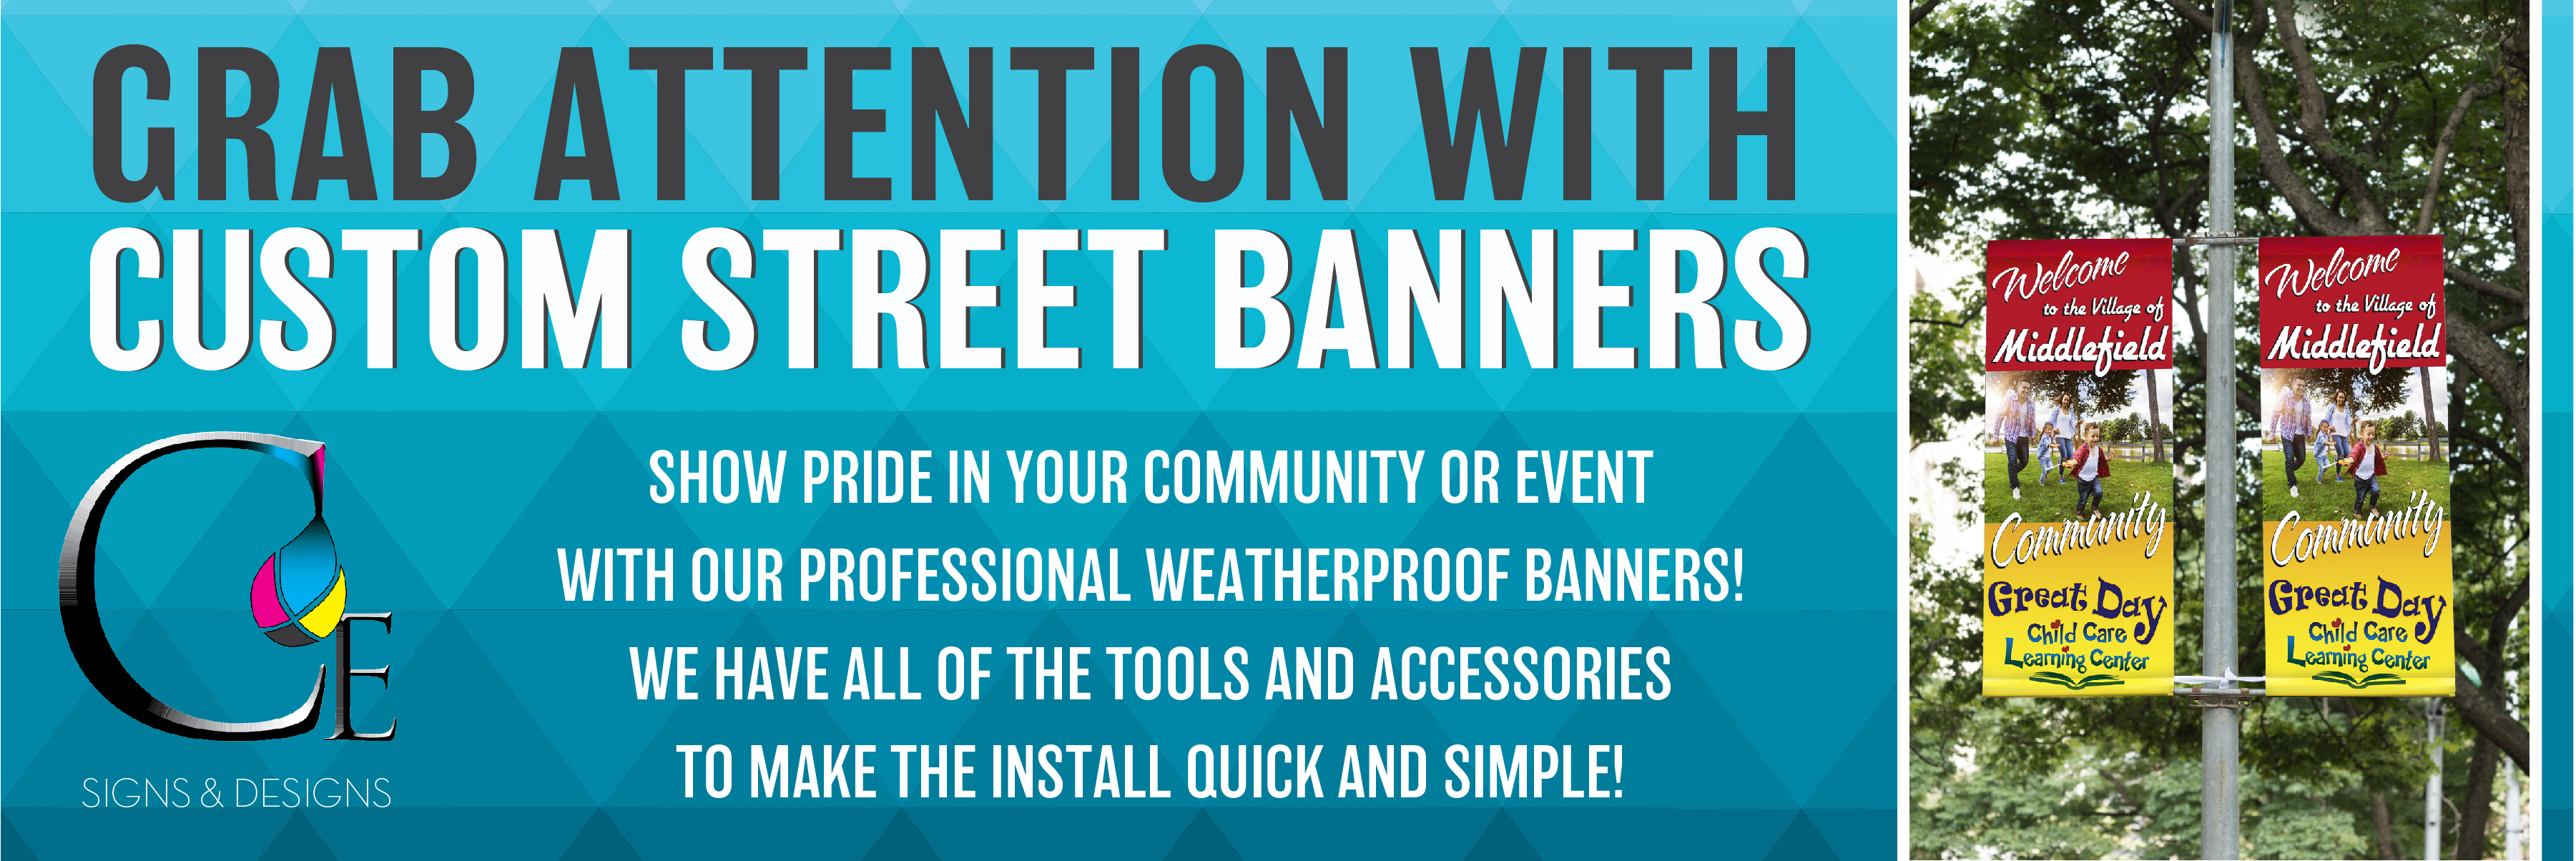 We offer custom street and event banners in a variety of sizes including custom sizing.